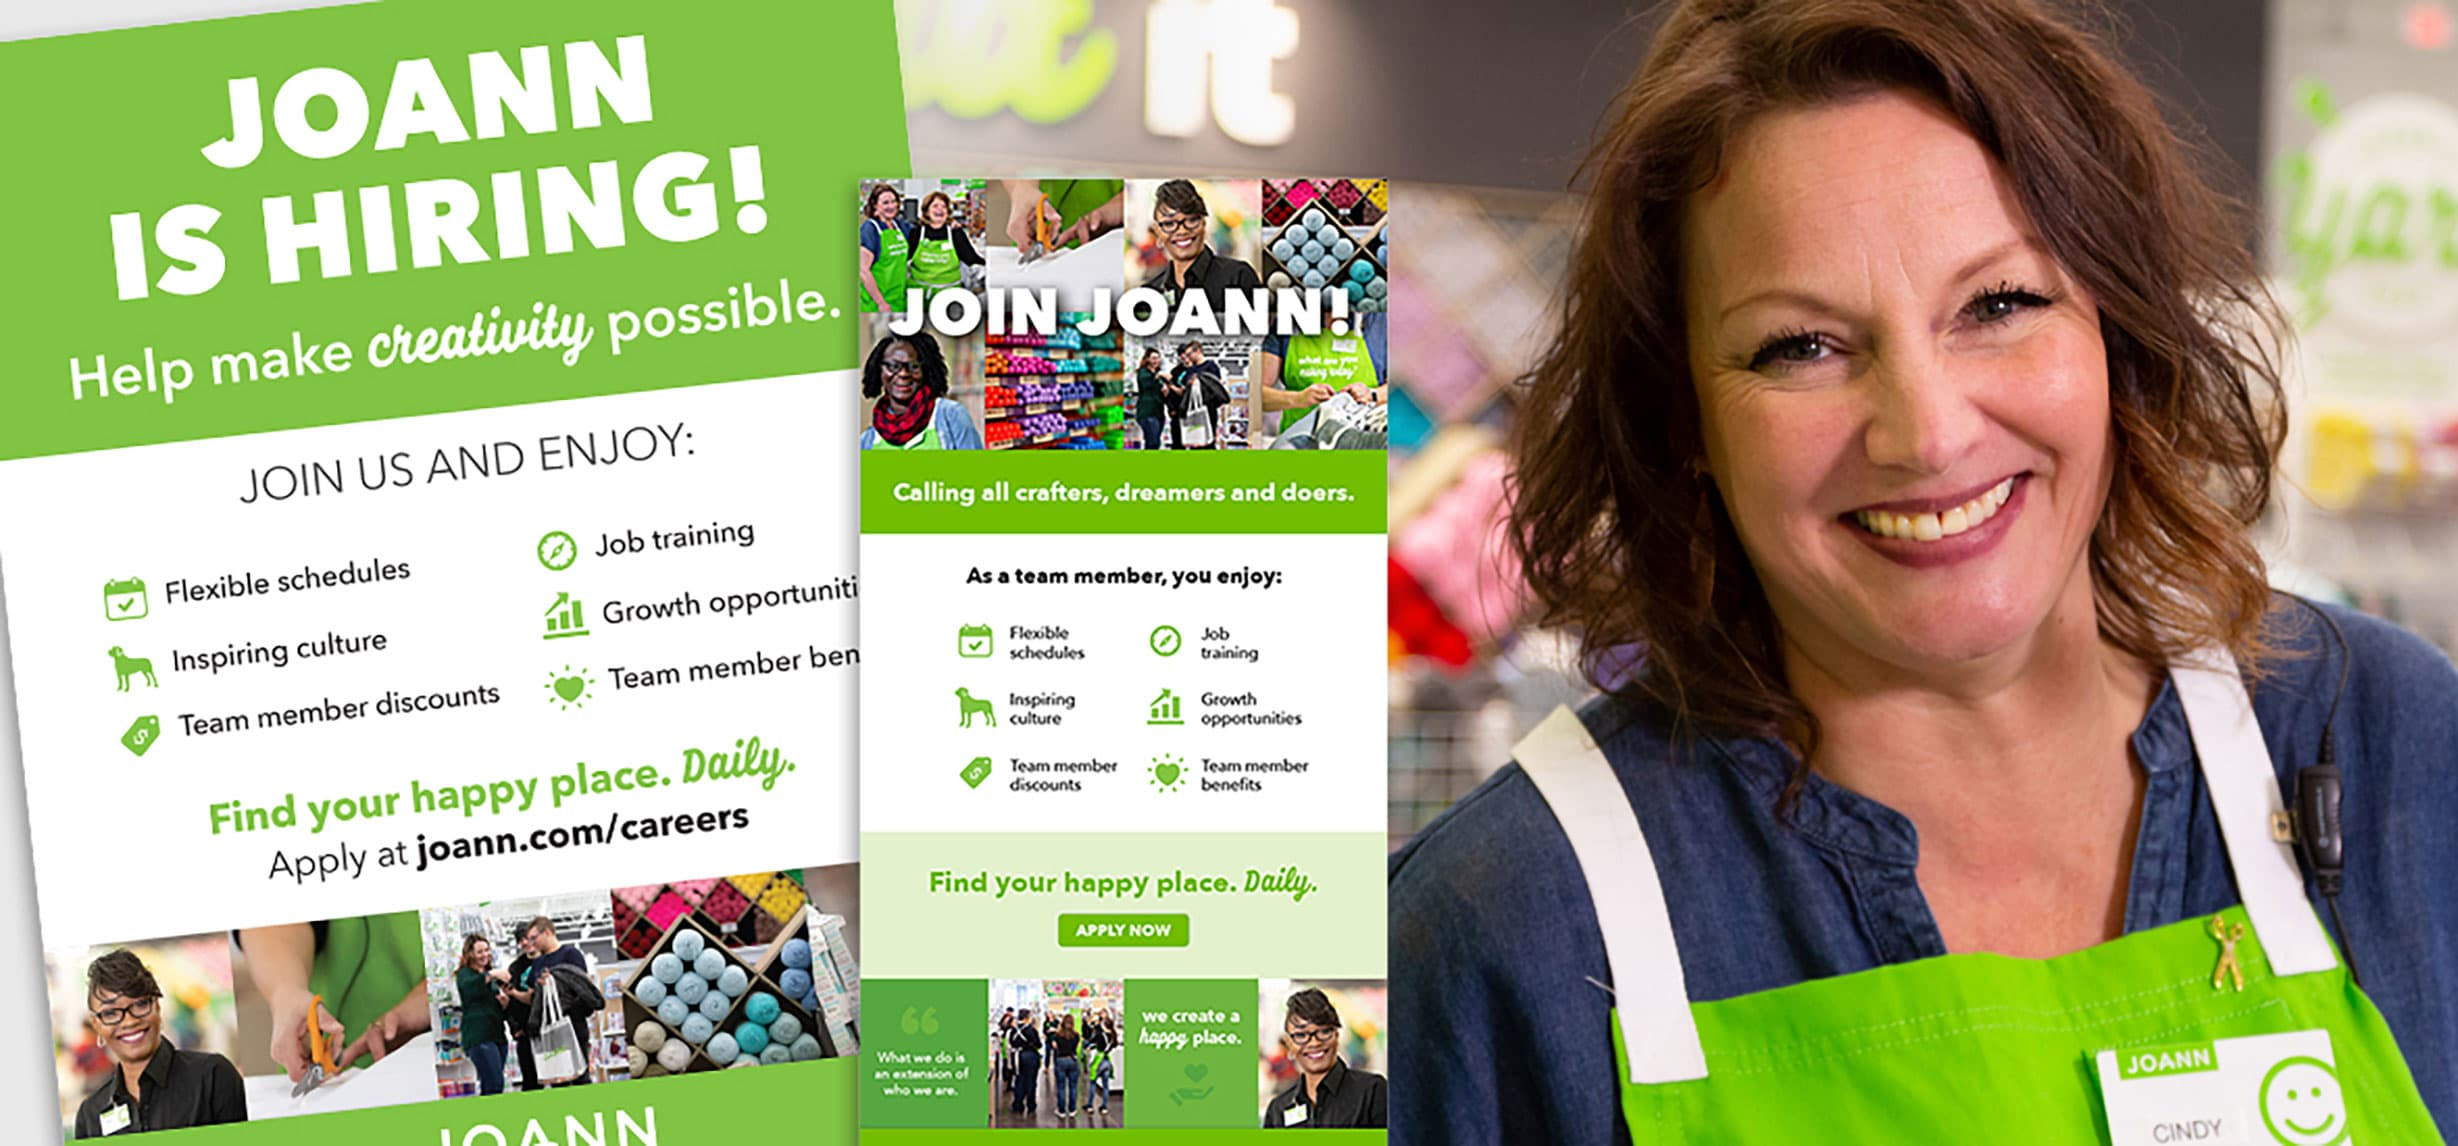 Samples of JOANN's new stores recruiting materials.